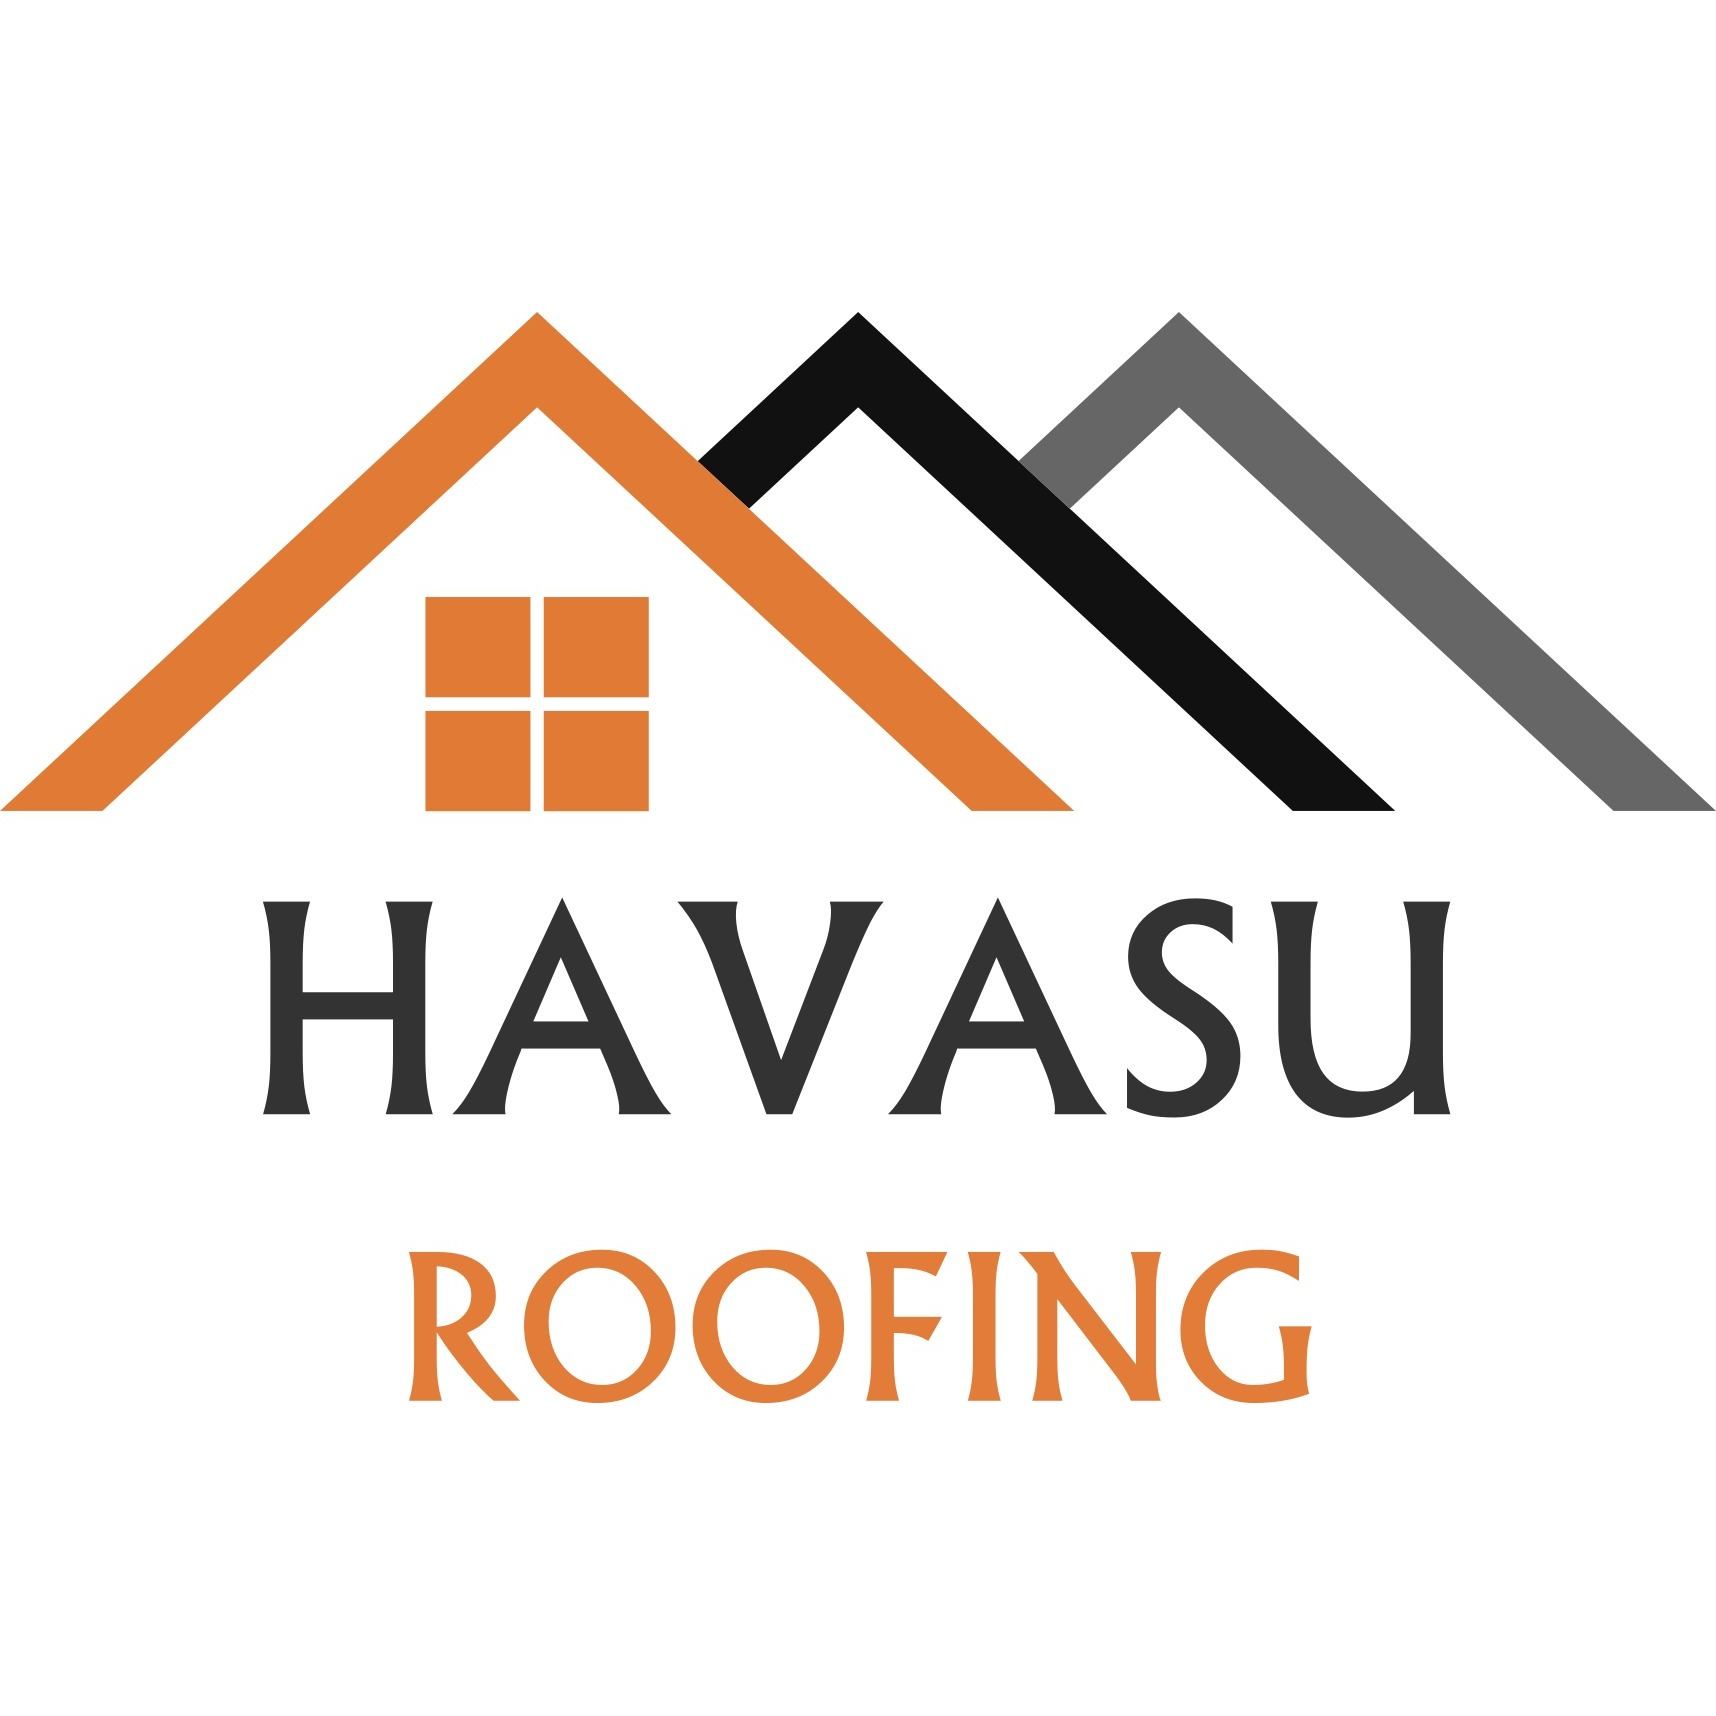 Havasu Roofing of Northern Arizona